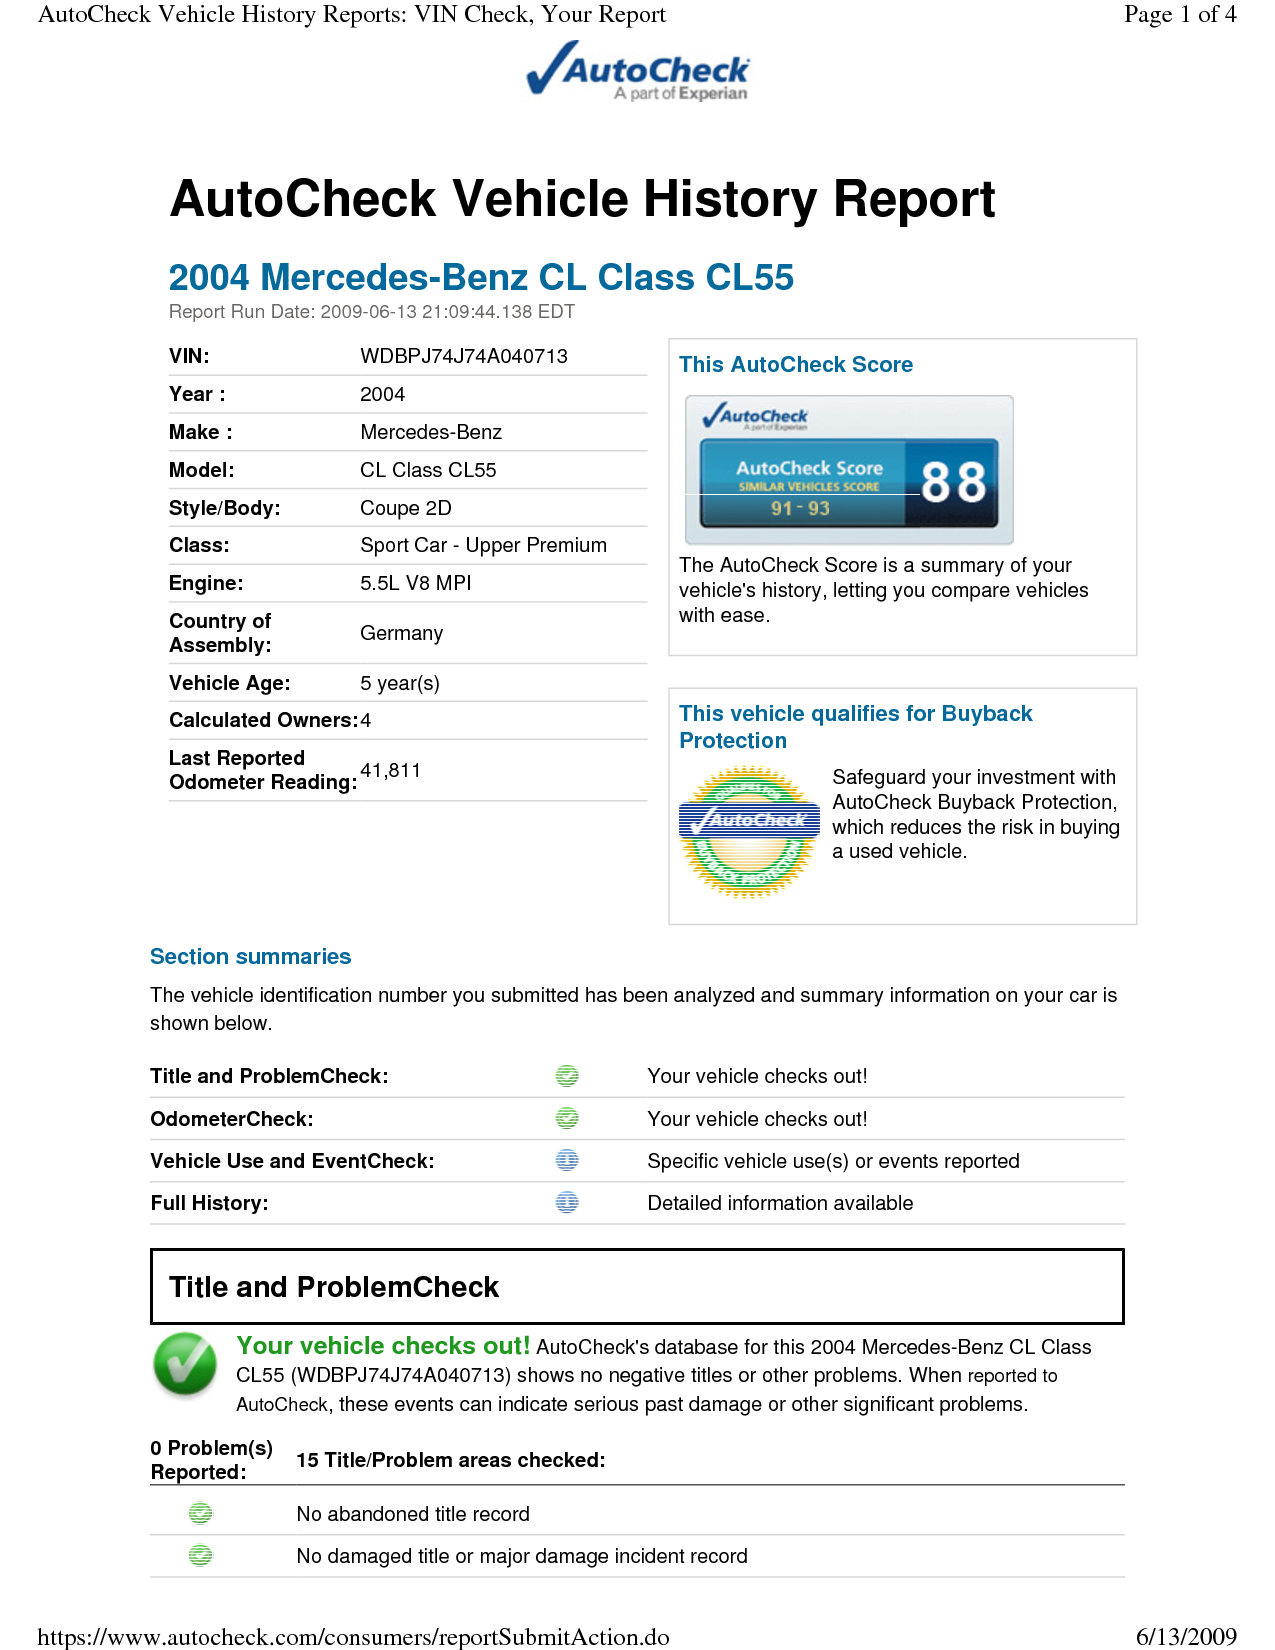 How to Get A Free Carfax Report without Paying Beautiful Carfax Vs Autocheck Reports What You Don T Know